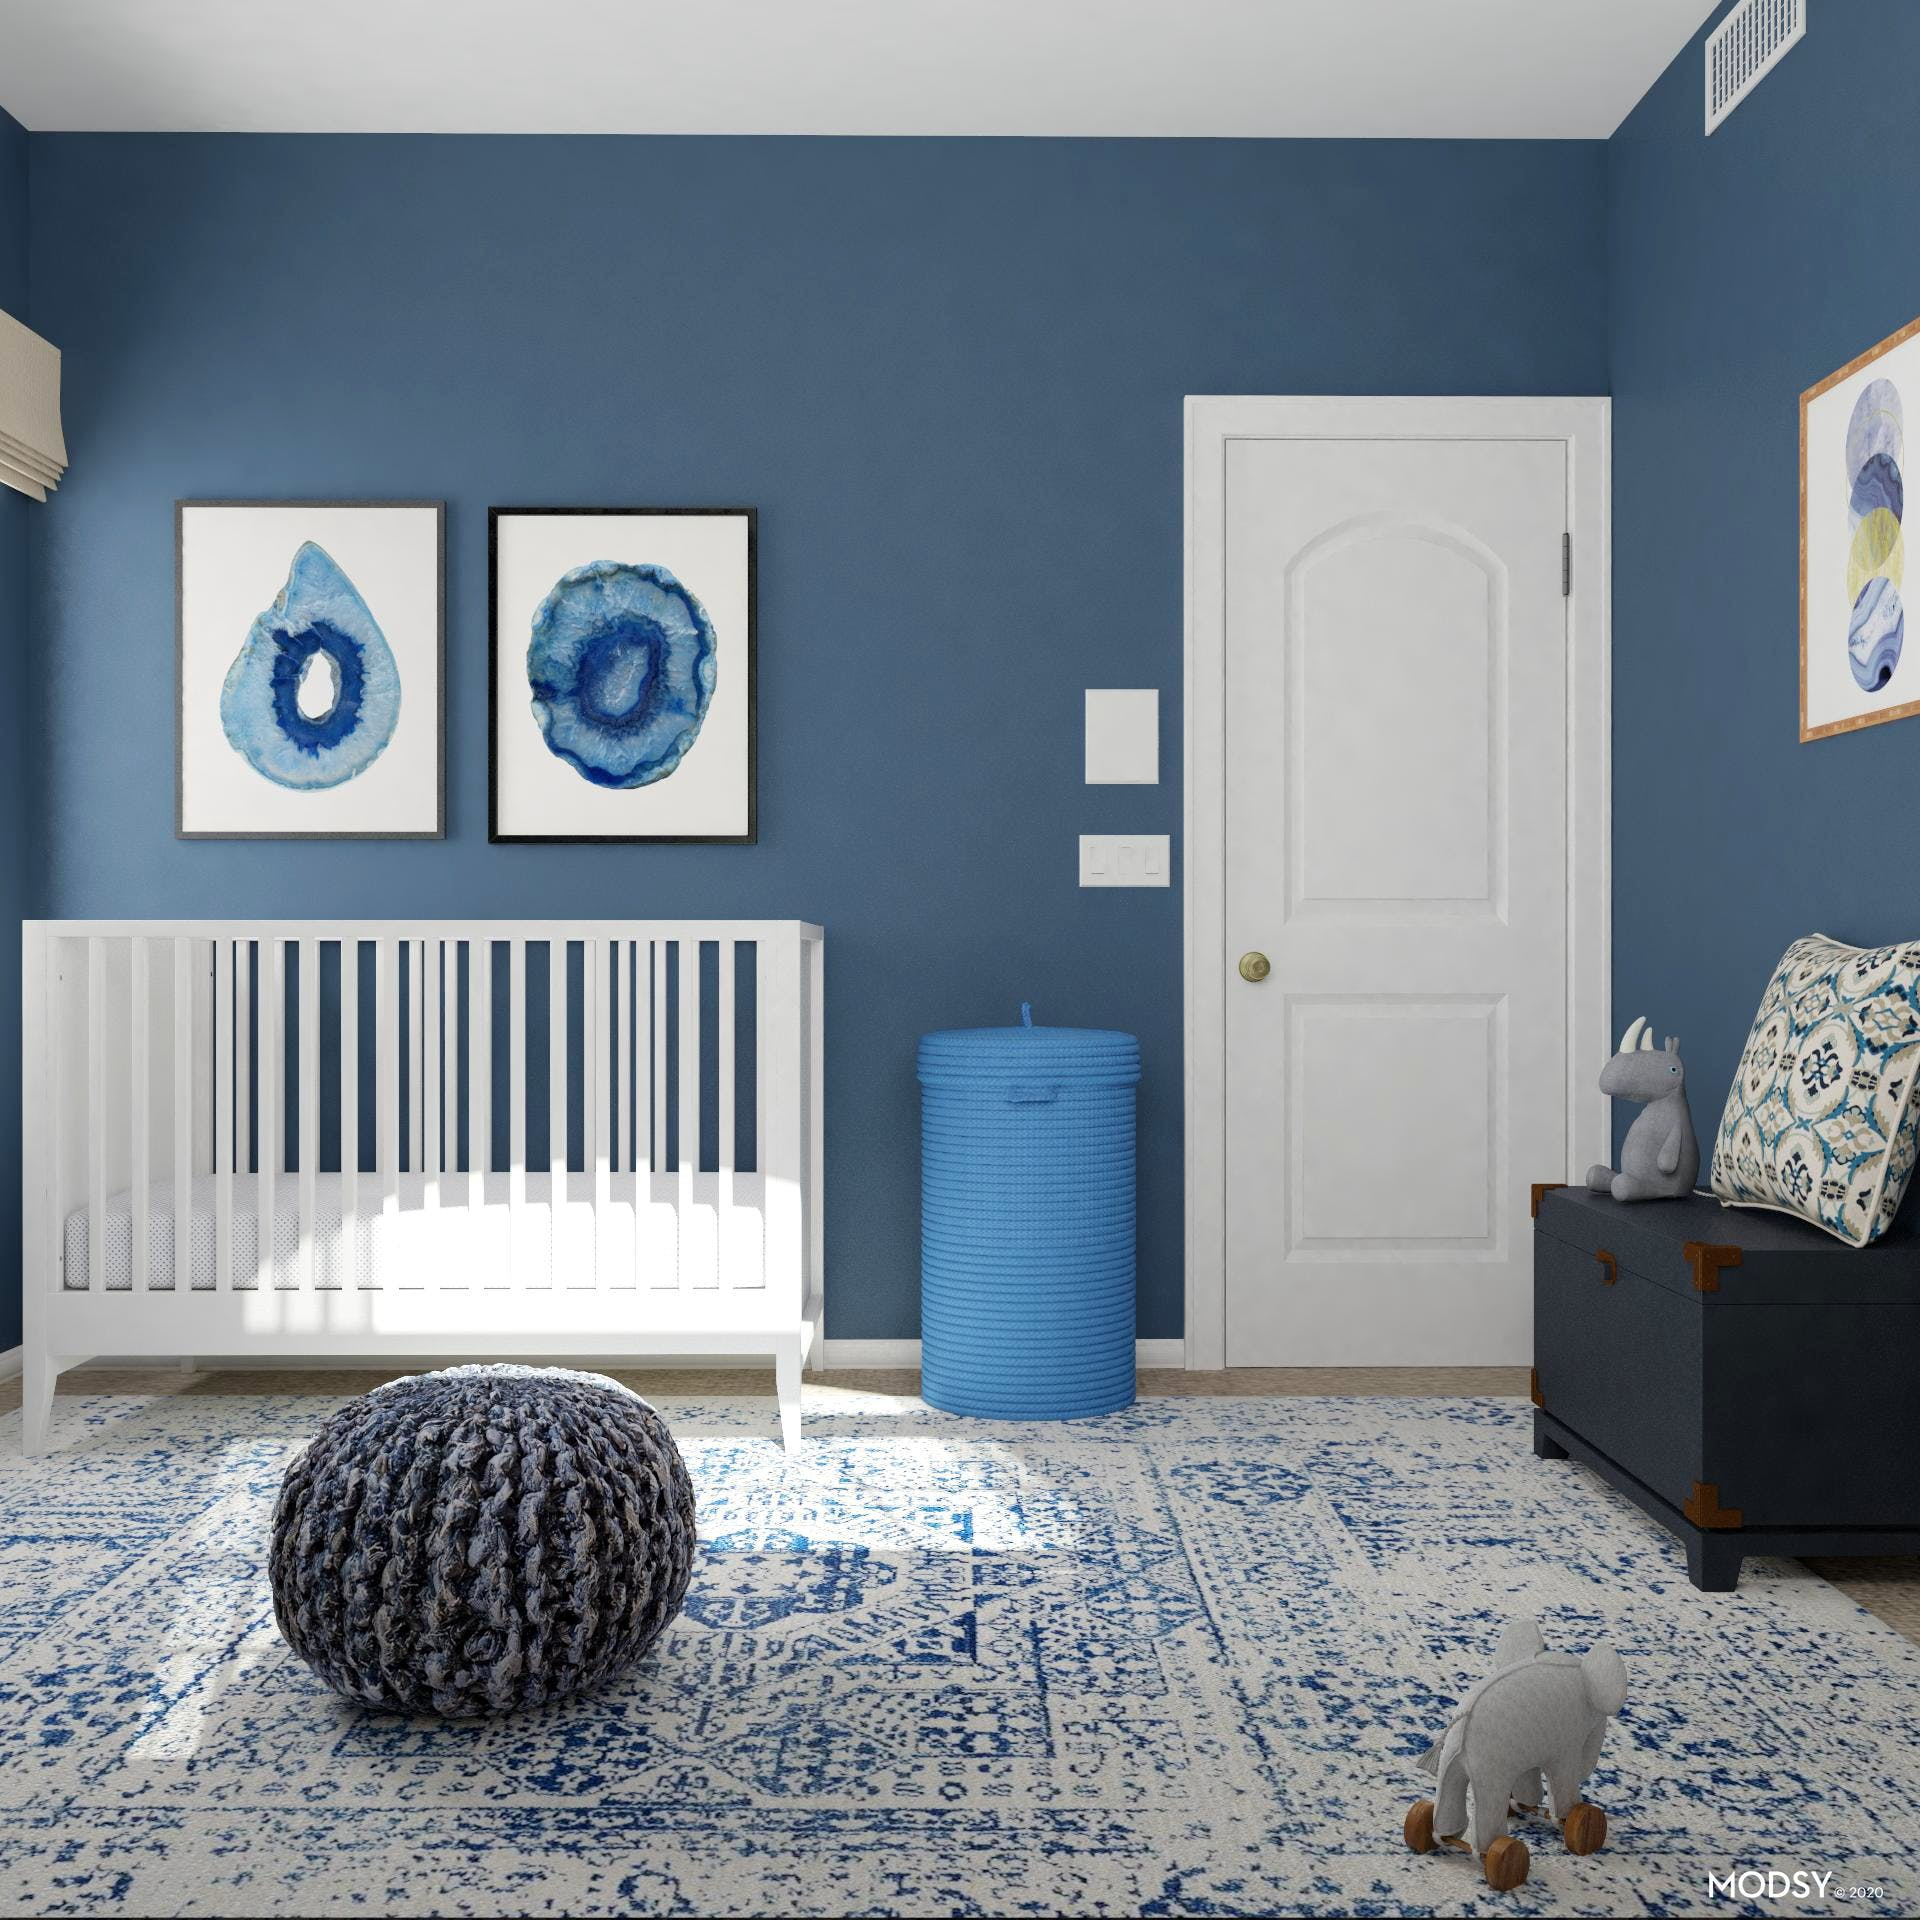 Simple Crib and Pop of Blue